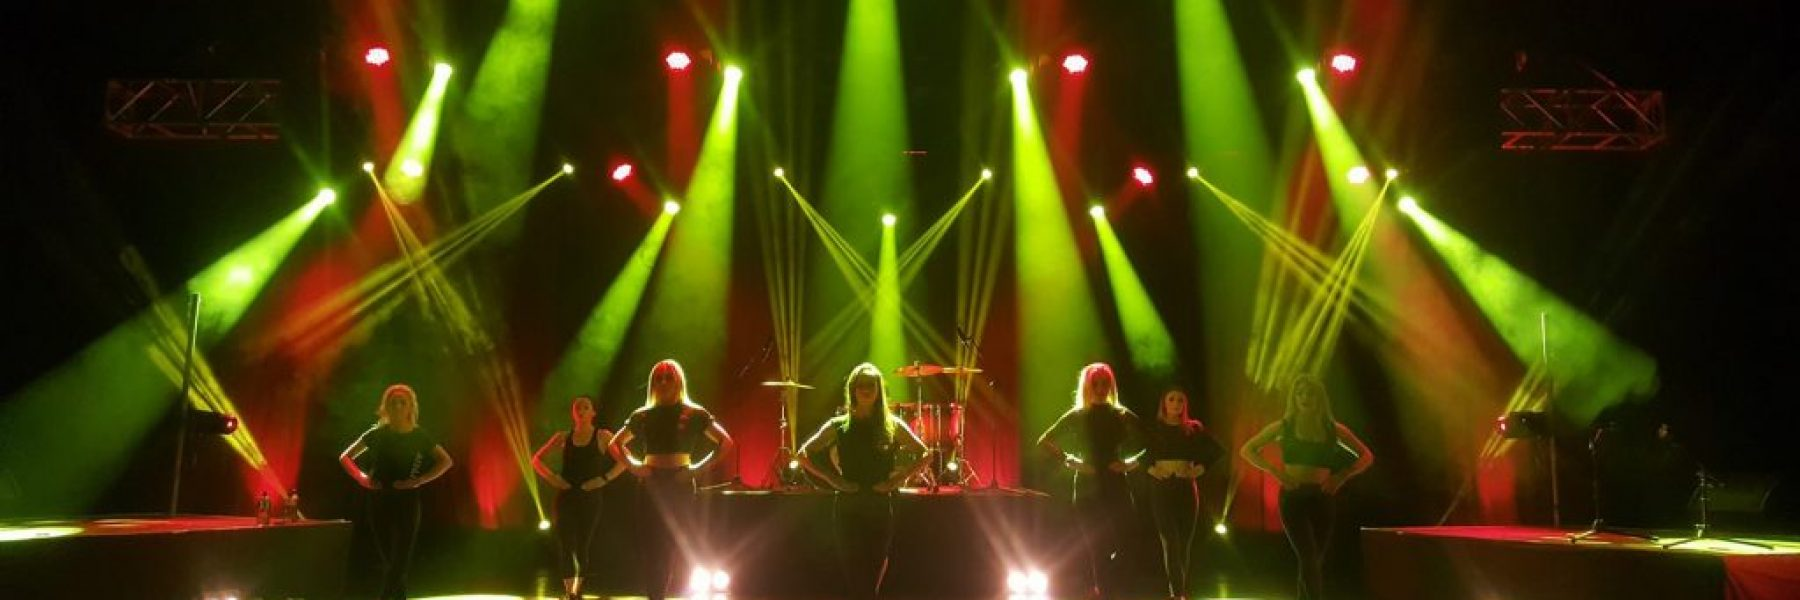 INEC Killarney Praises PROLIGHTS Lighting Rig 18 Months On